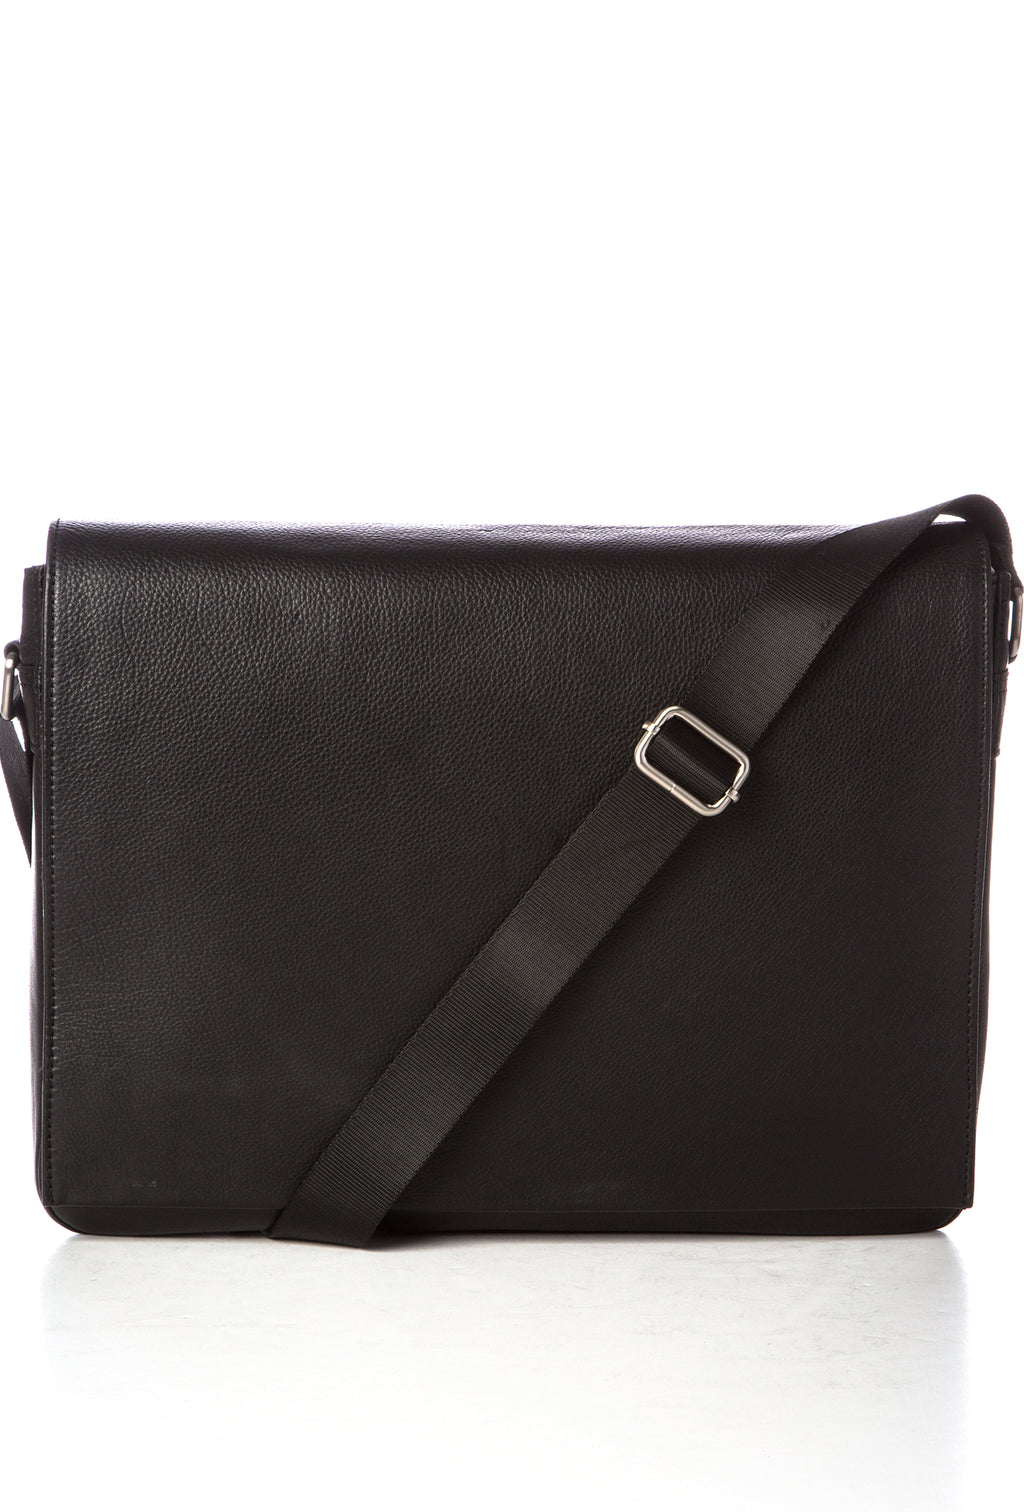 STEFAN - Pebbled Leather Messenger - Black